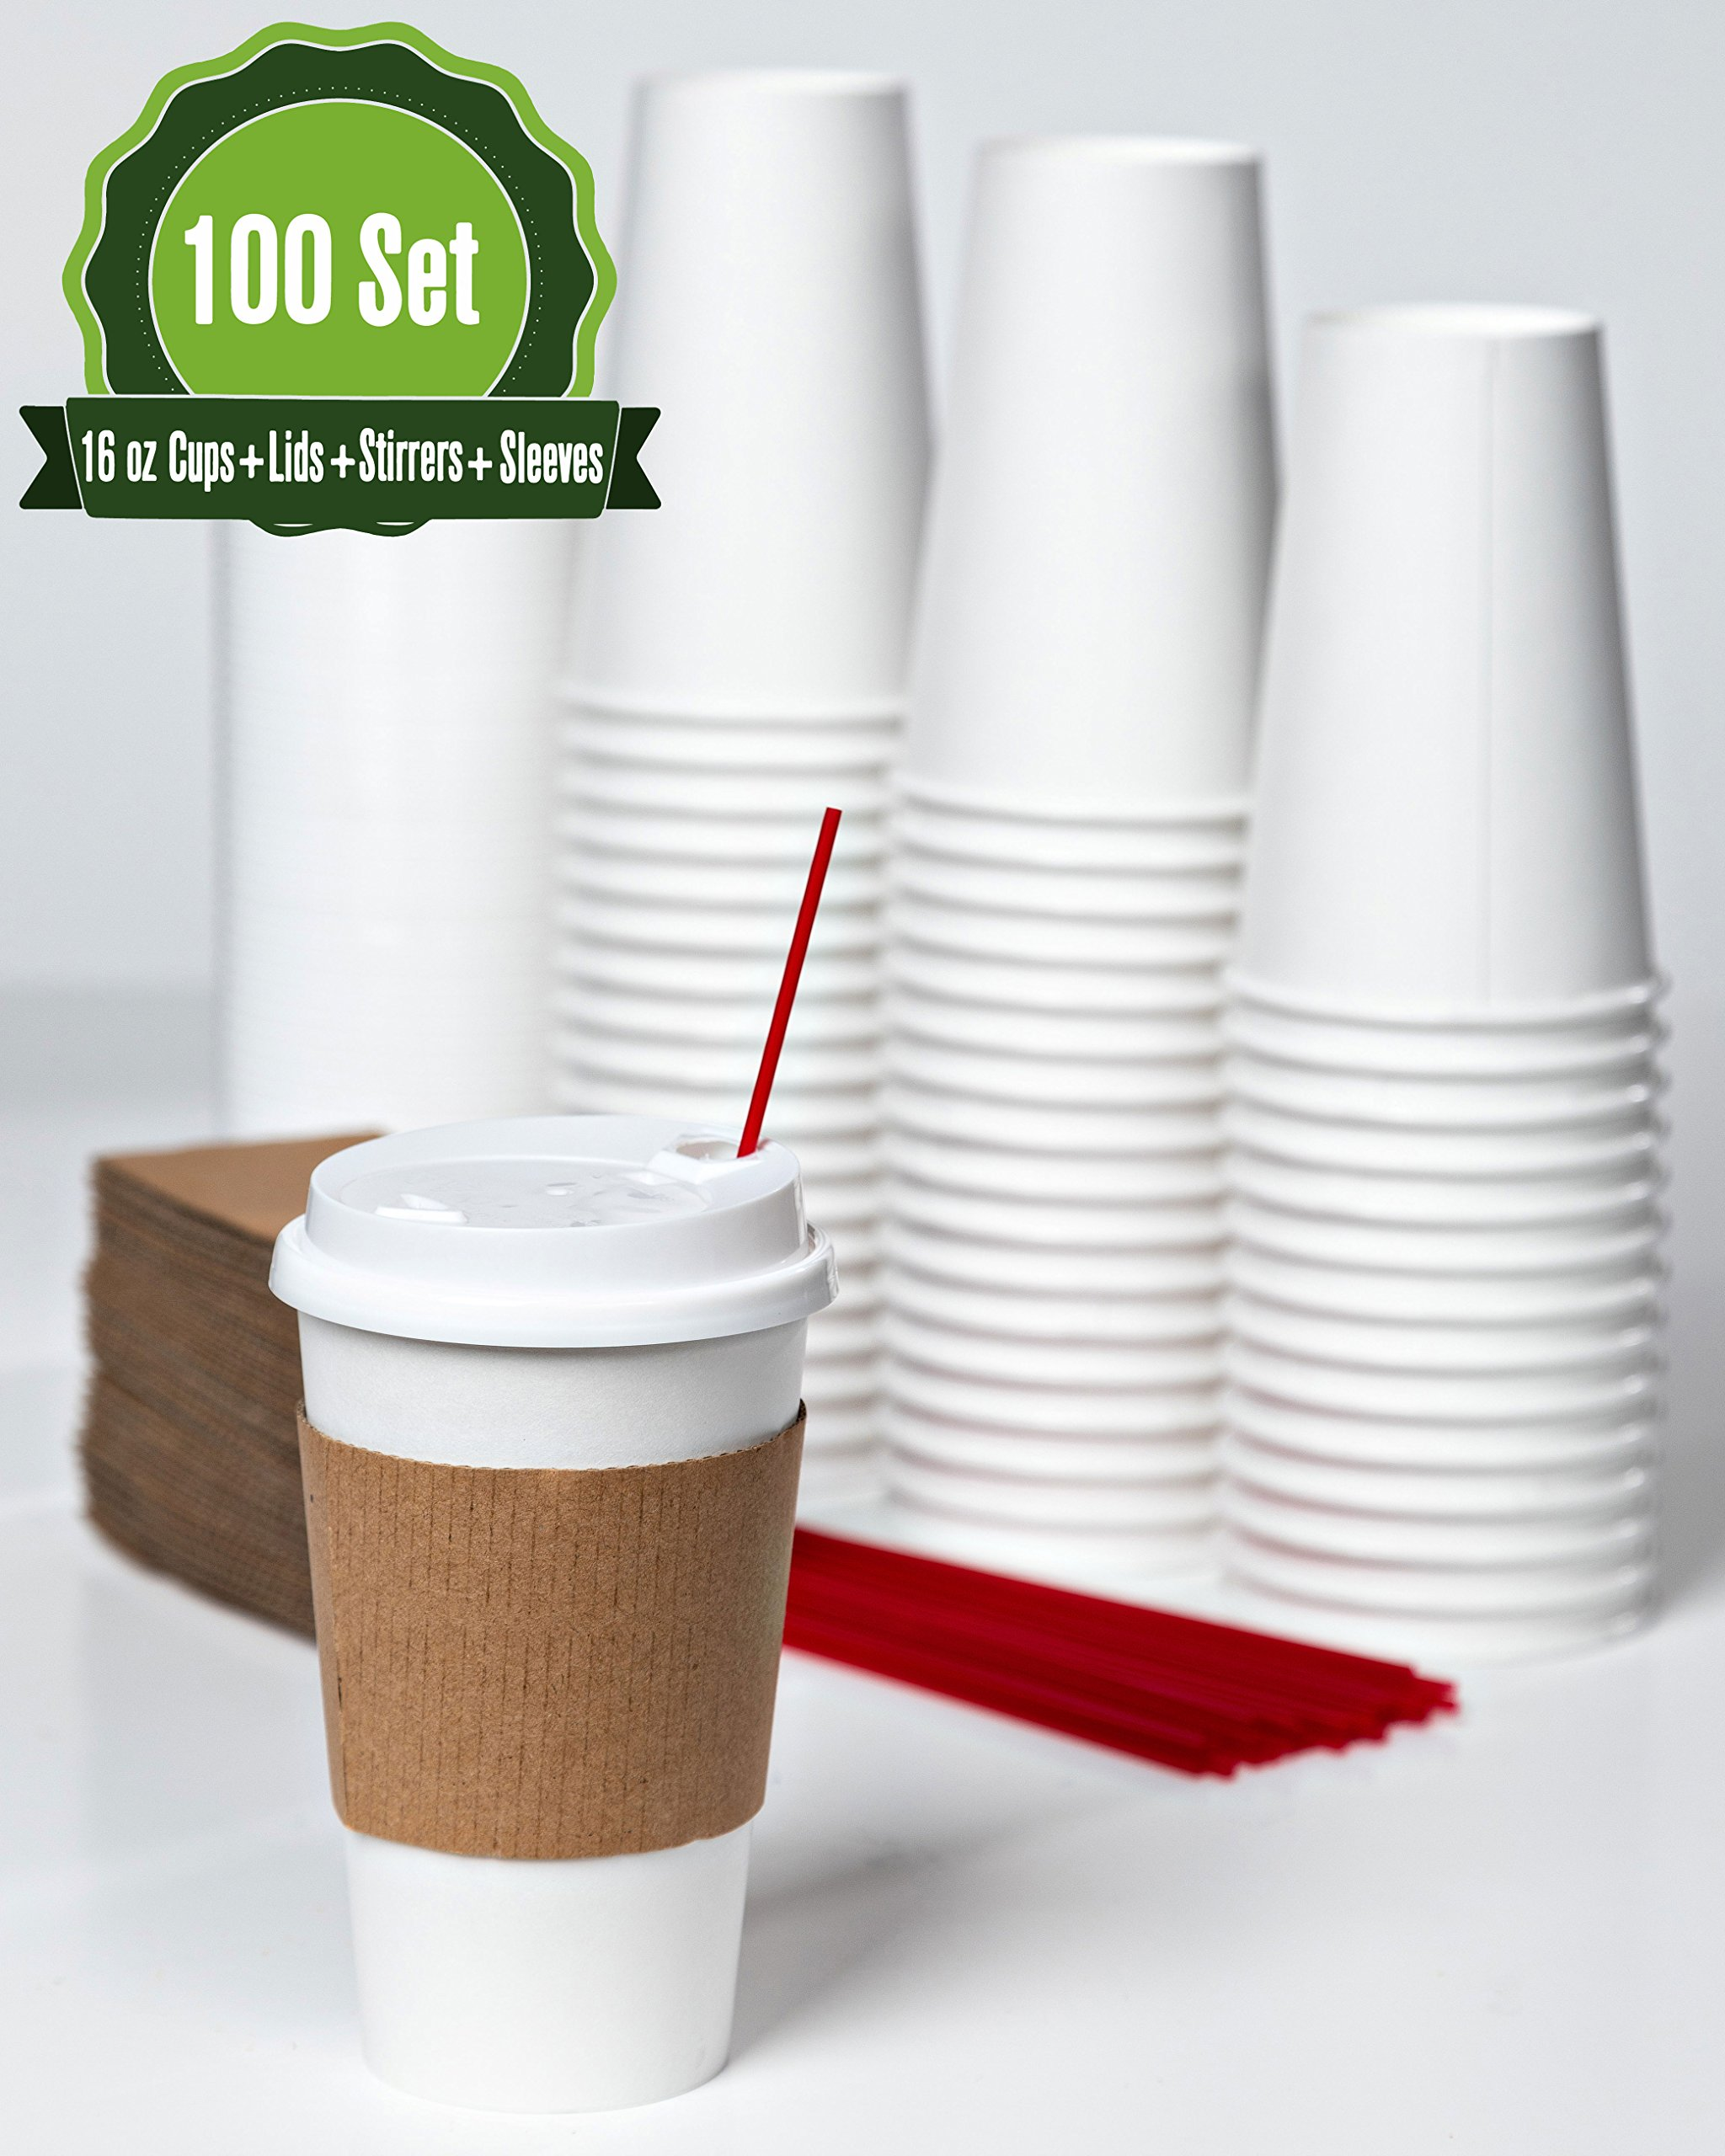 Hot White Paper Coffee Cups with Lids, Stirrers, and Sleeves - 100 Set - Disposable Paper Cups ideal for Home, Office, Restaurant, and Togo